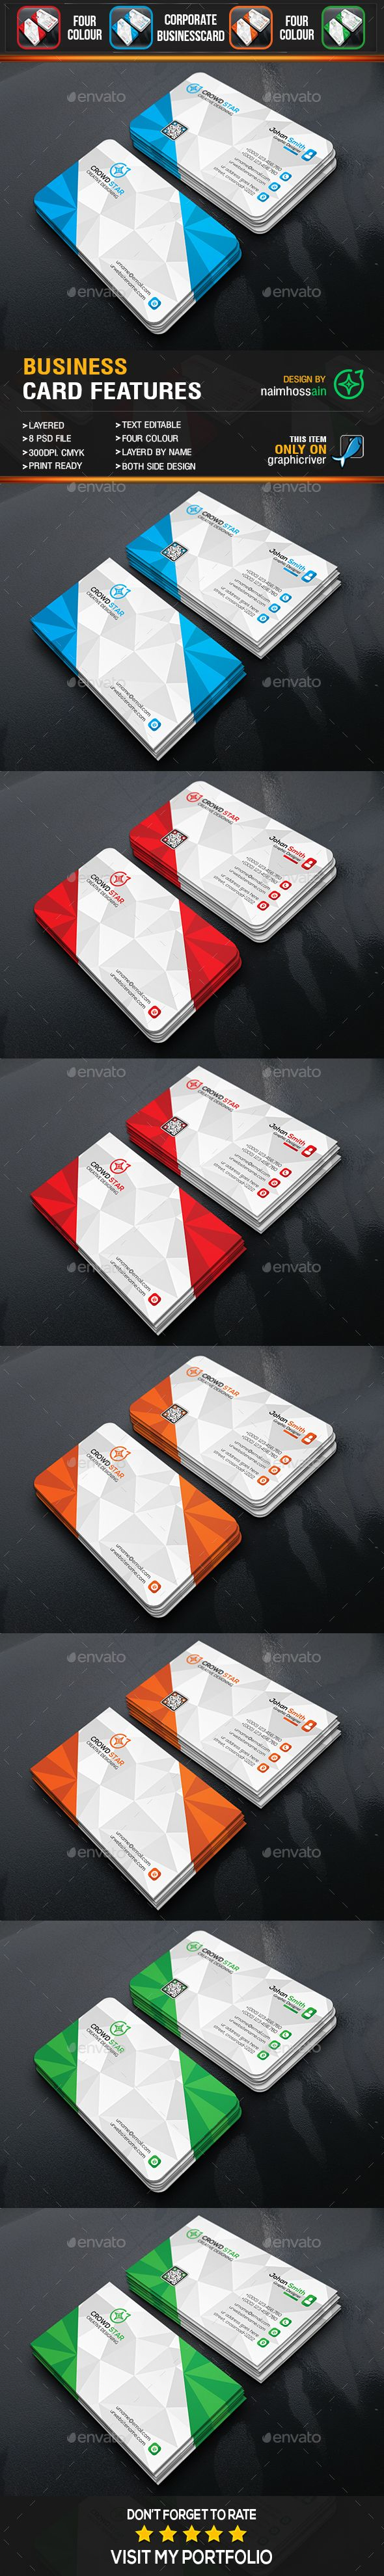 Corporate 3d business card pinterest 3d business card business corporate 3d business card business cards print templates cheaphphosting Image collections